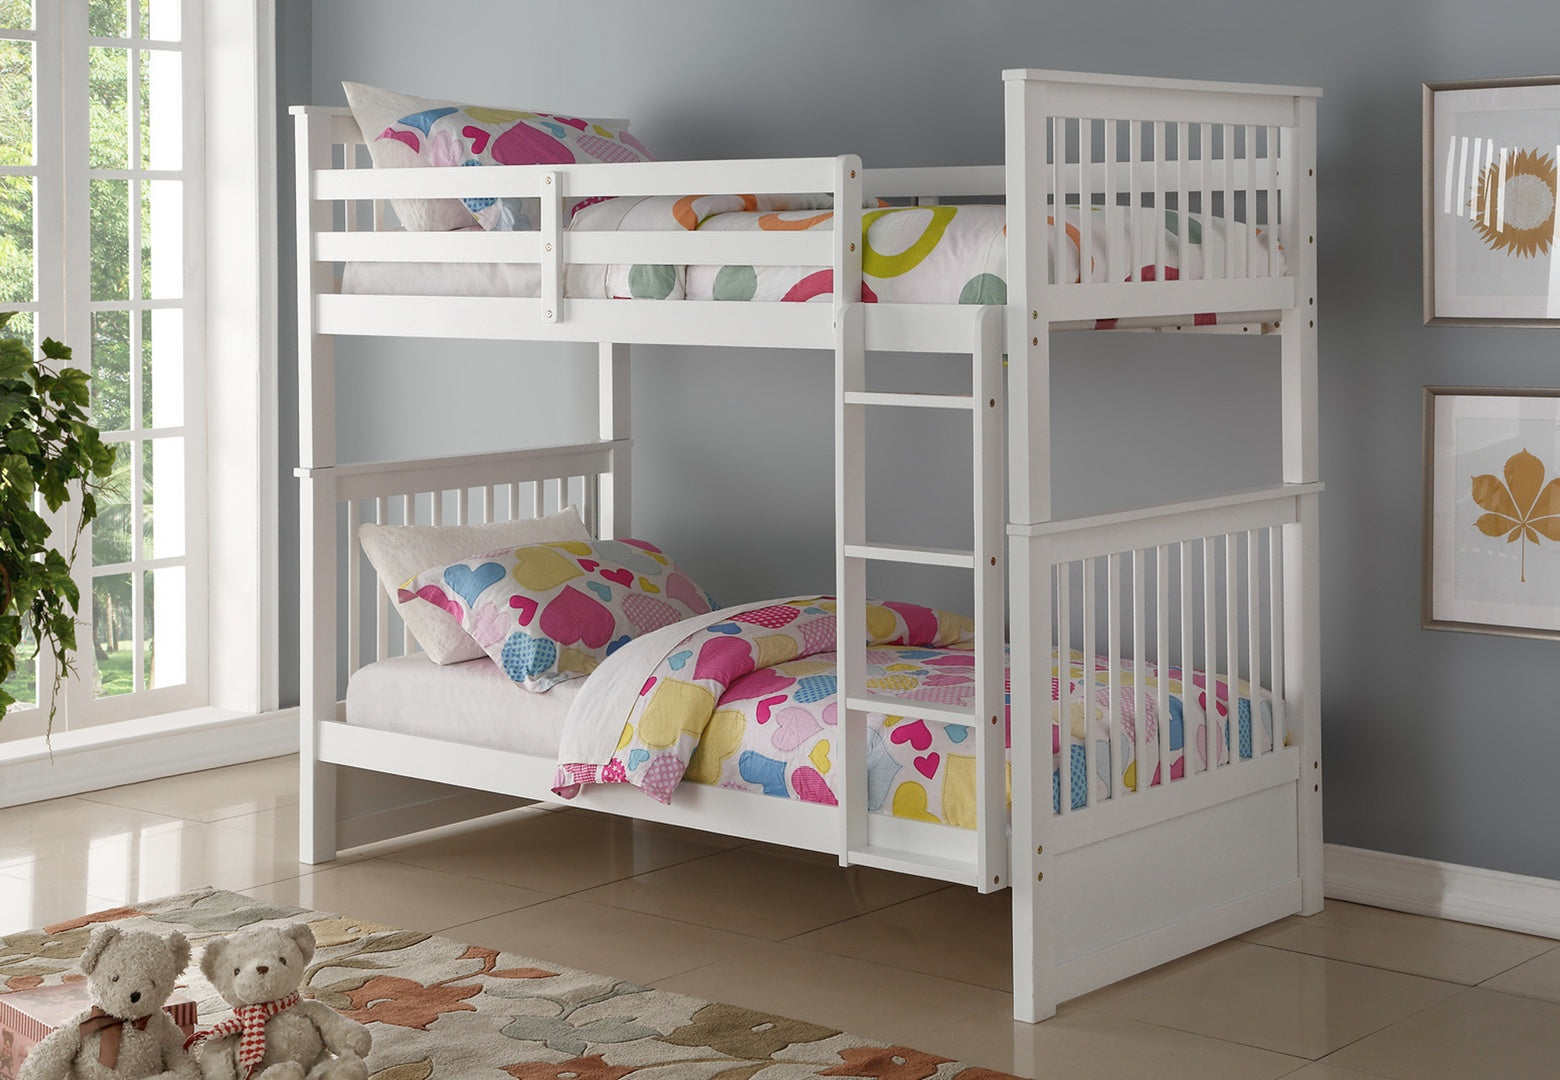 121 BUNK BED Mission Single/Single Bunk Bed